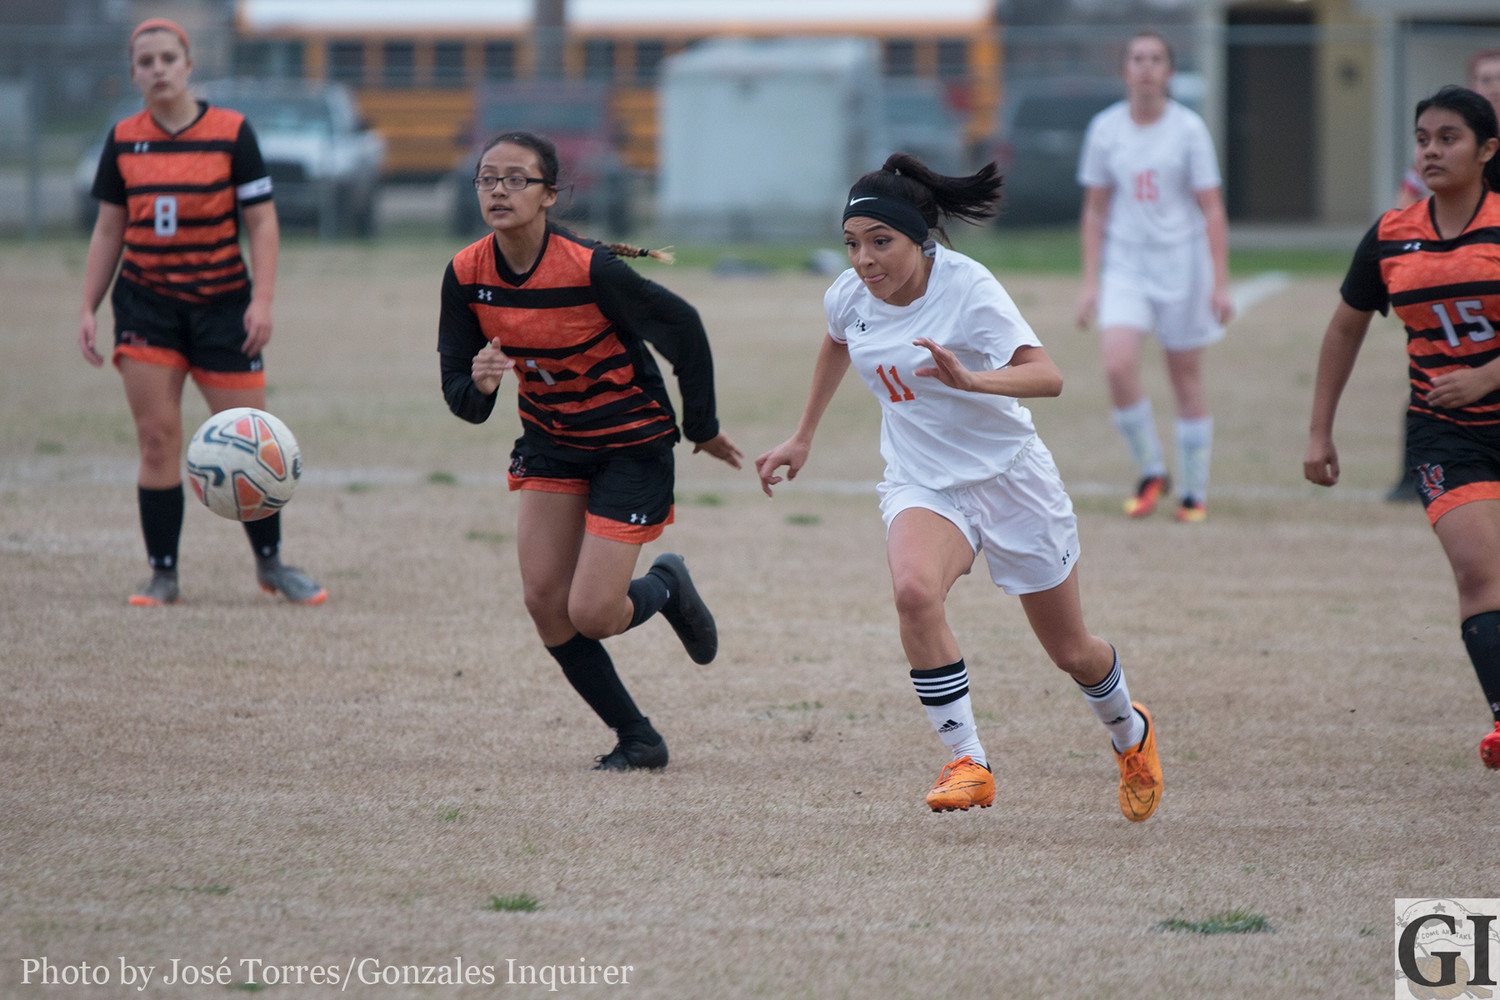 Seidy Villegas chases down the ball.